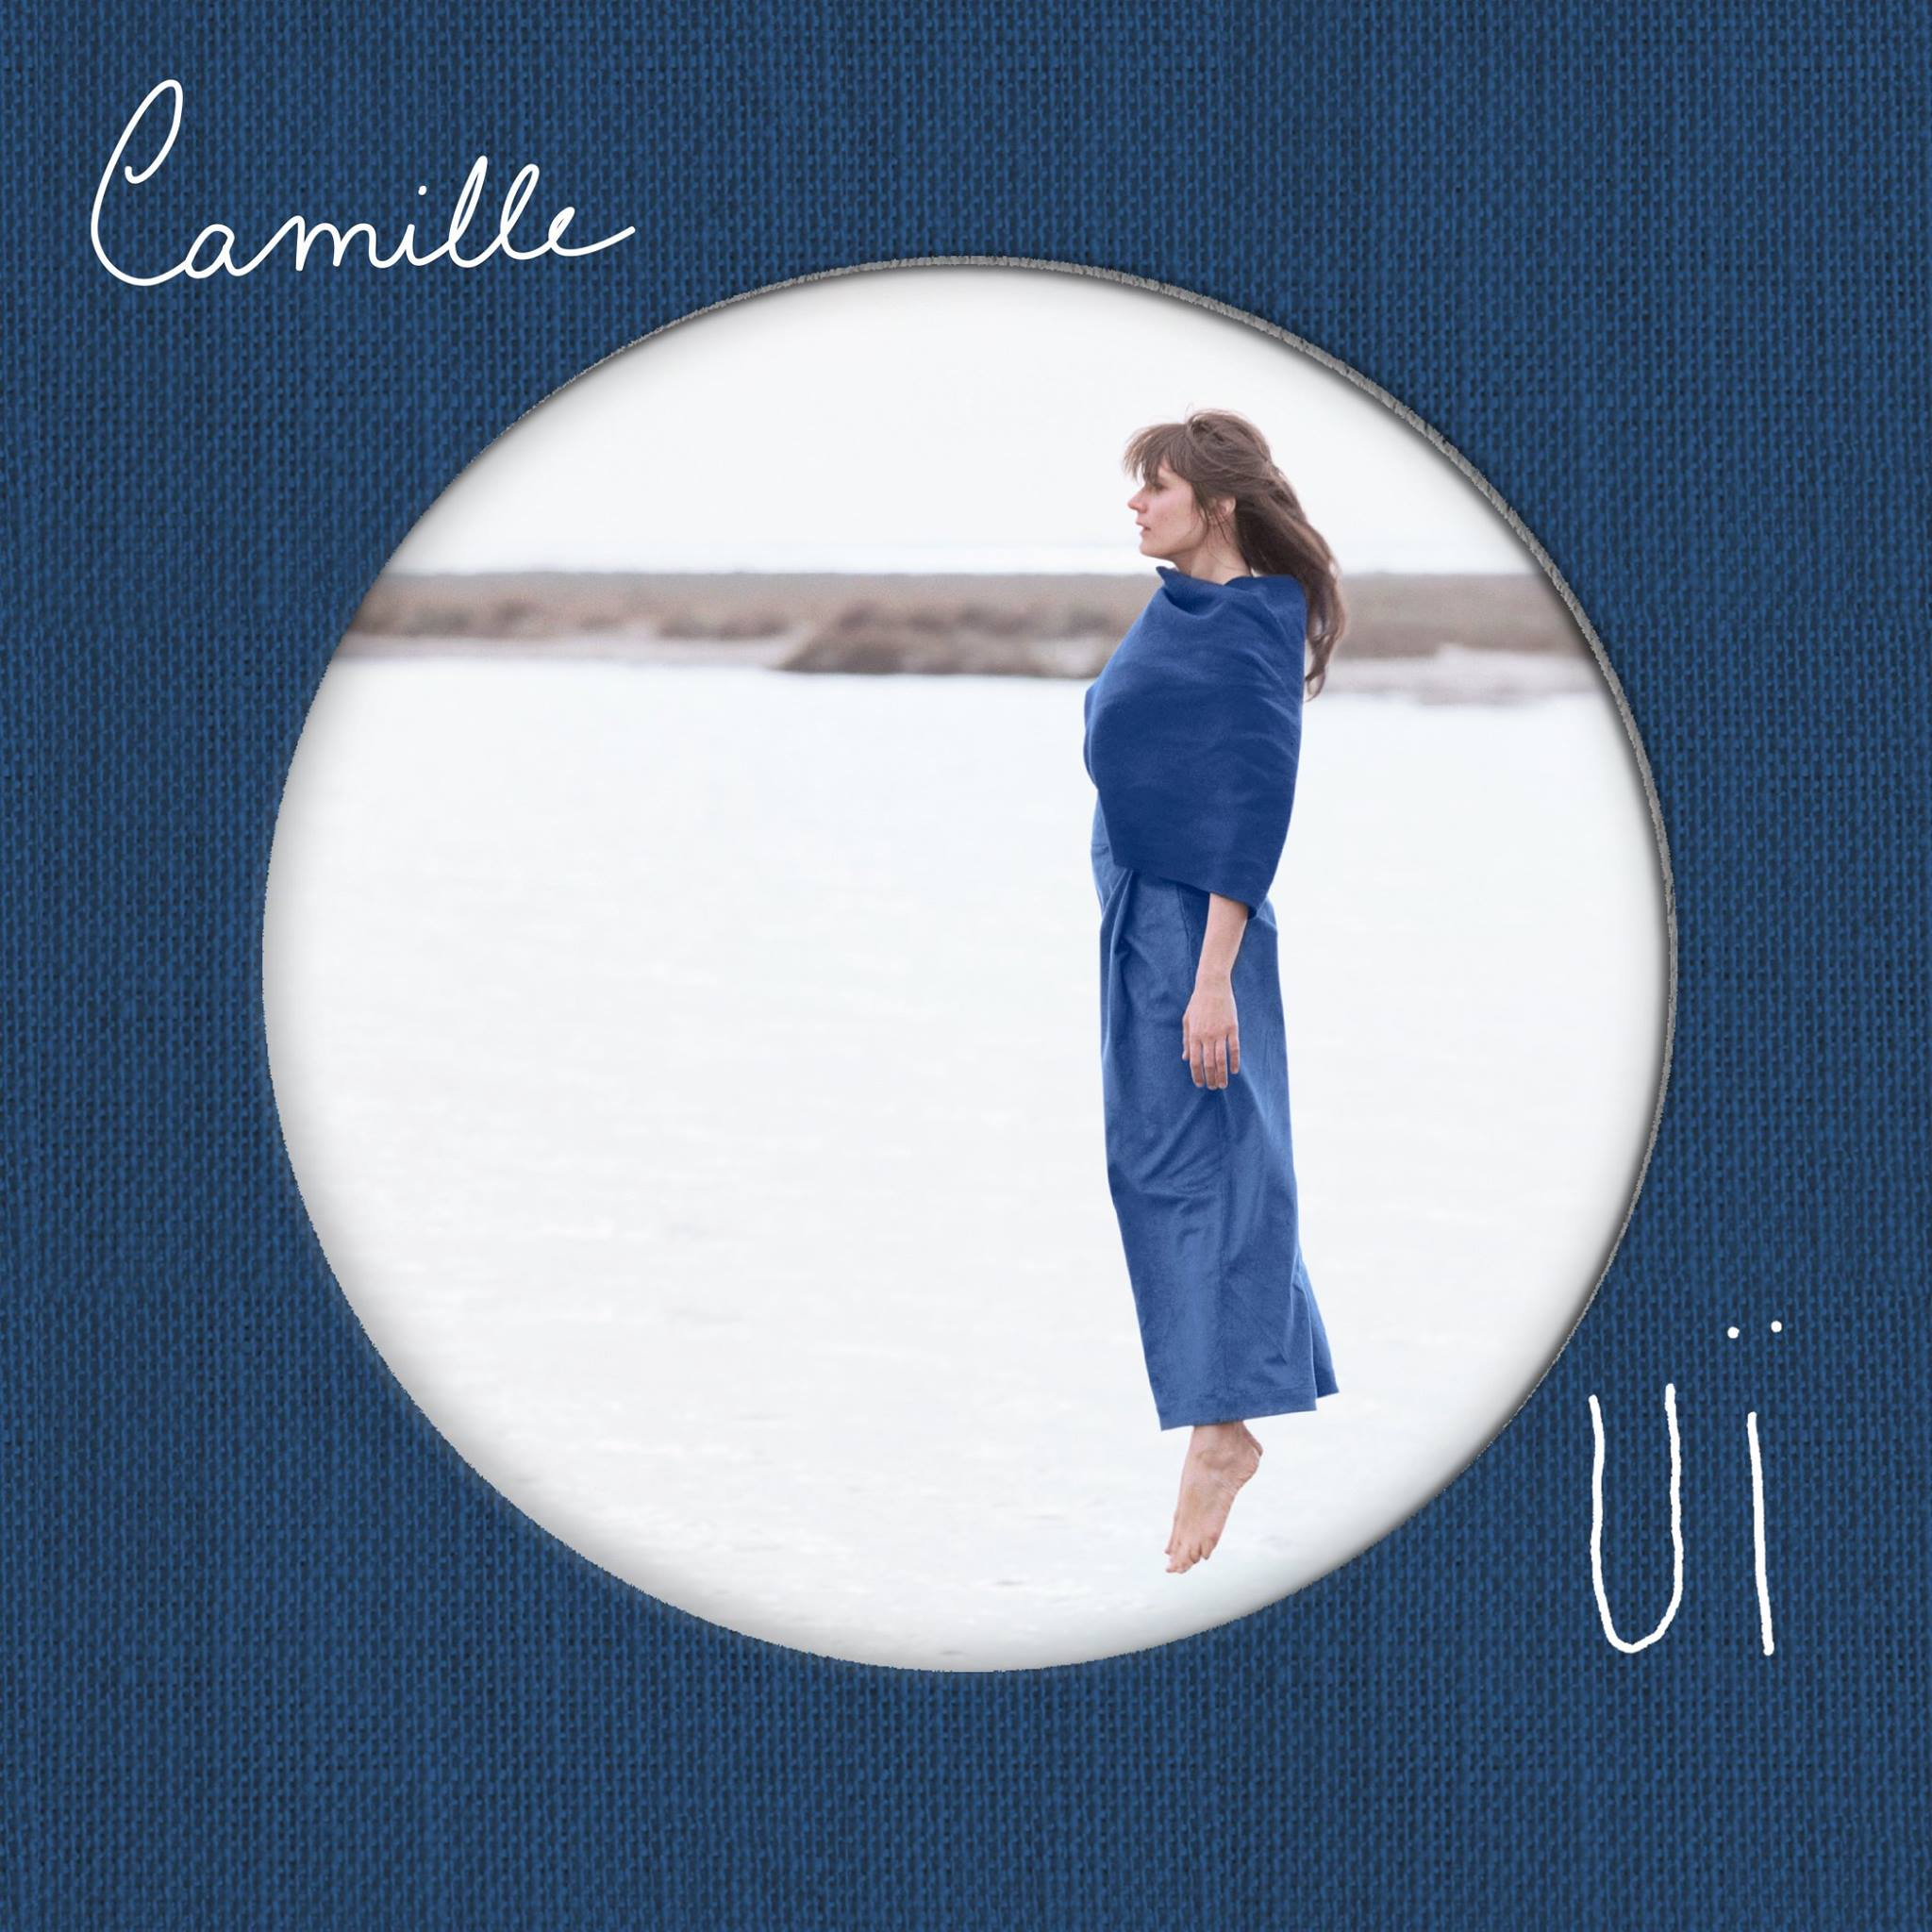 Camille, Oui